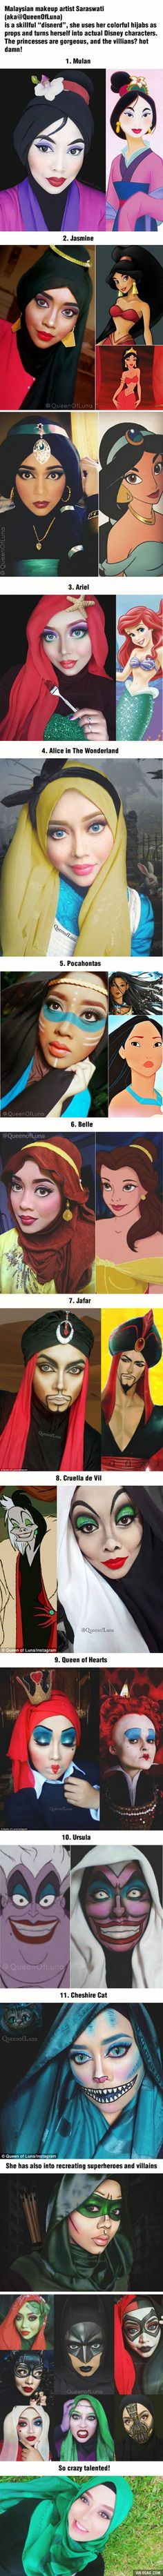 Malaysian Makeup Artist Transforms Into Stunning Disney Characters Using Her Hijab on 9GAG